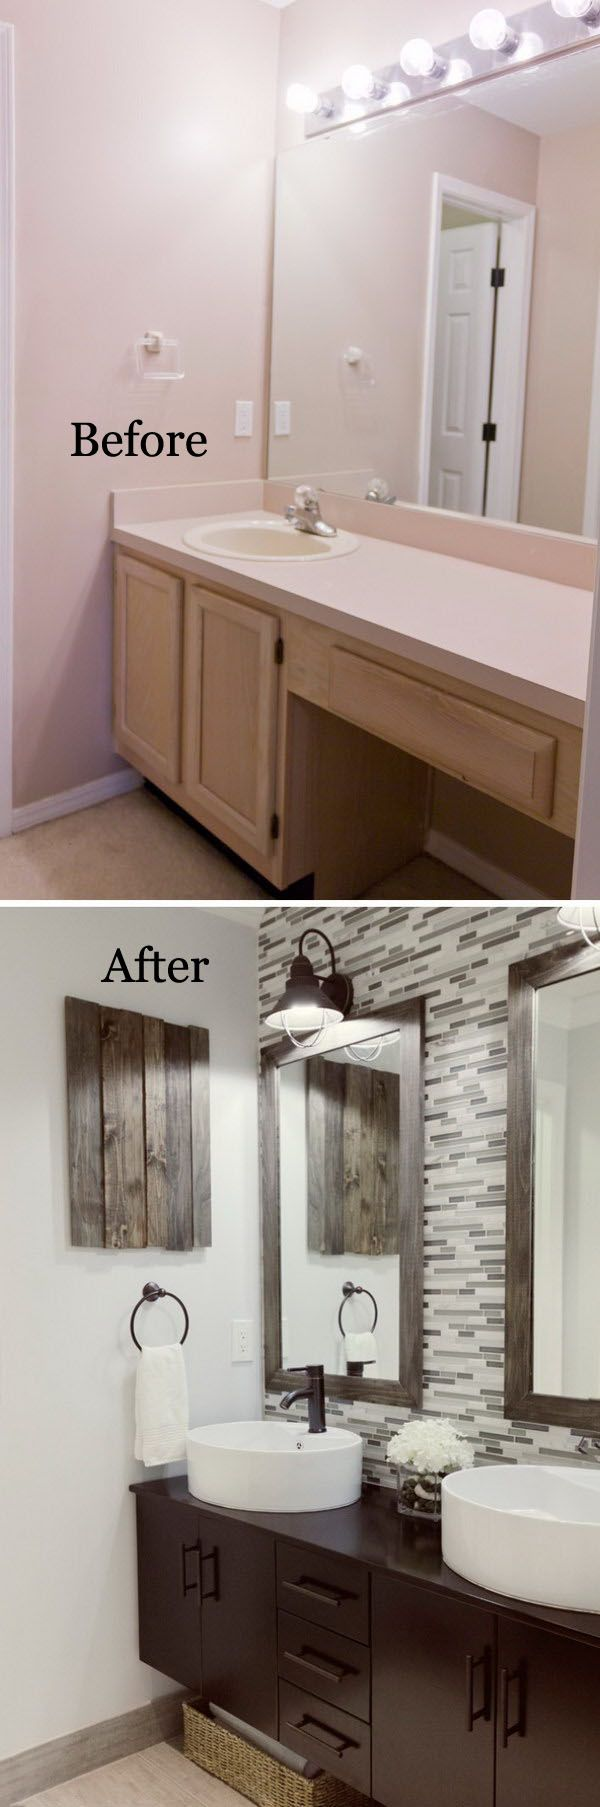 Bathroom Makeovers Wa best 25+ bathroom remodeling ideas on pinterest | small bathroom